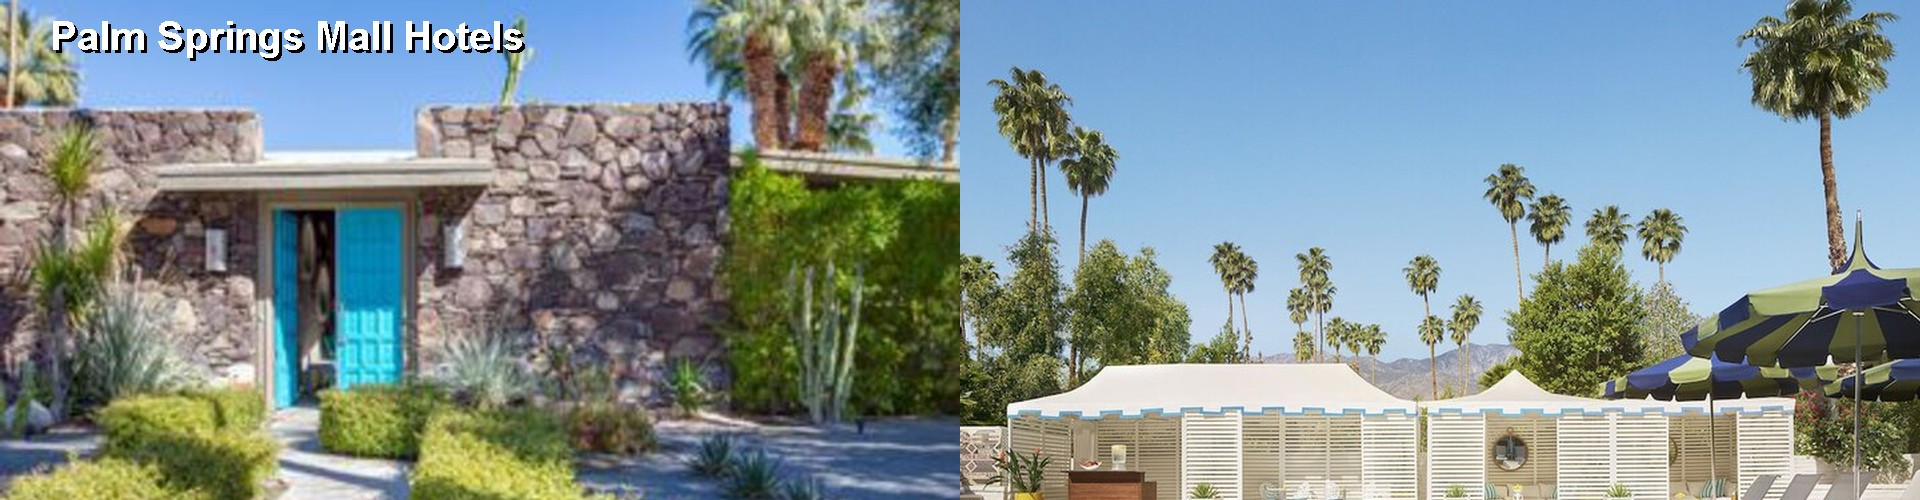 5 Best Hotels near Palm Springs Mall